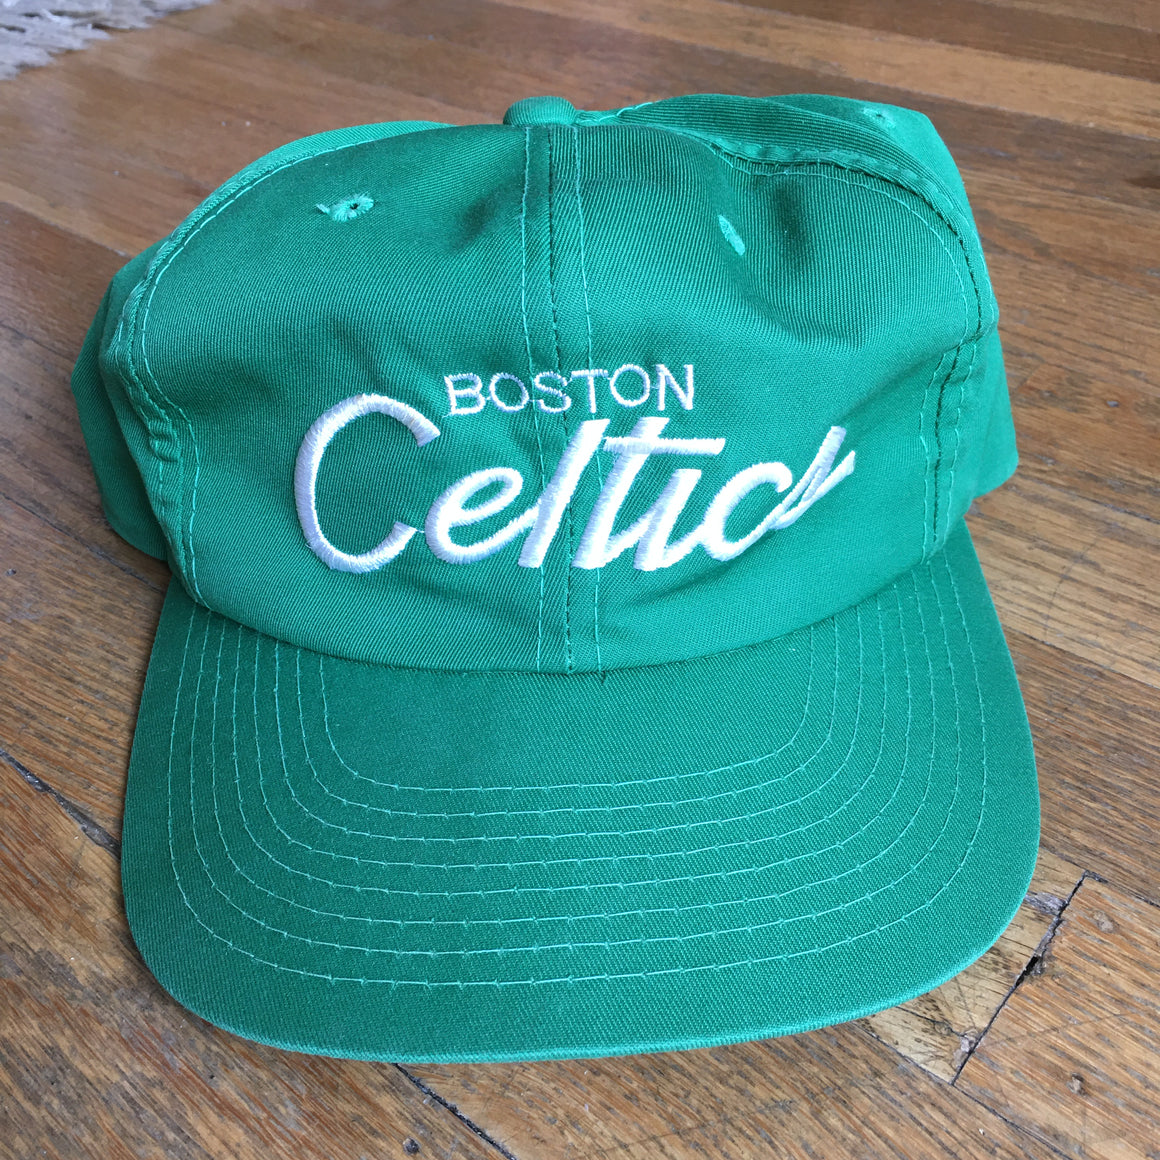 Boston Celtics script snapback hat